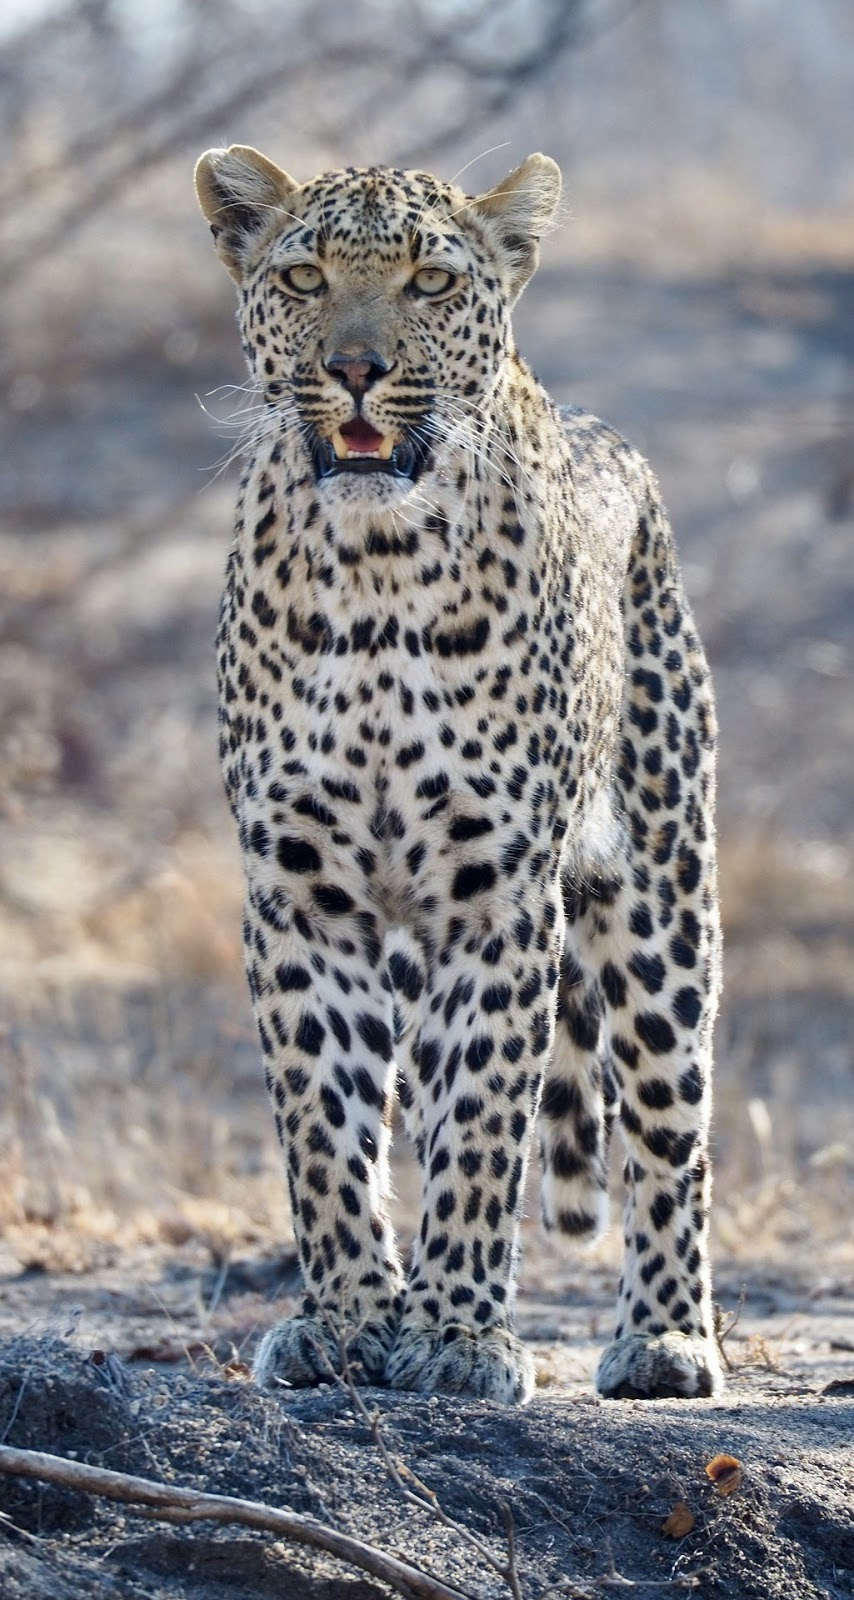 Leopard on the look out.